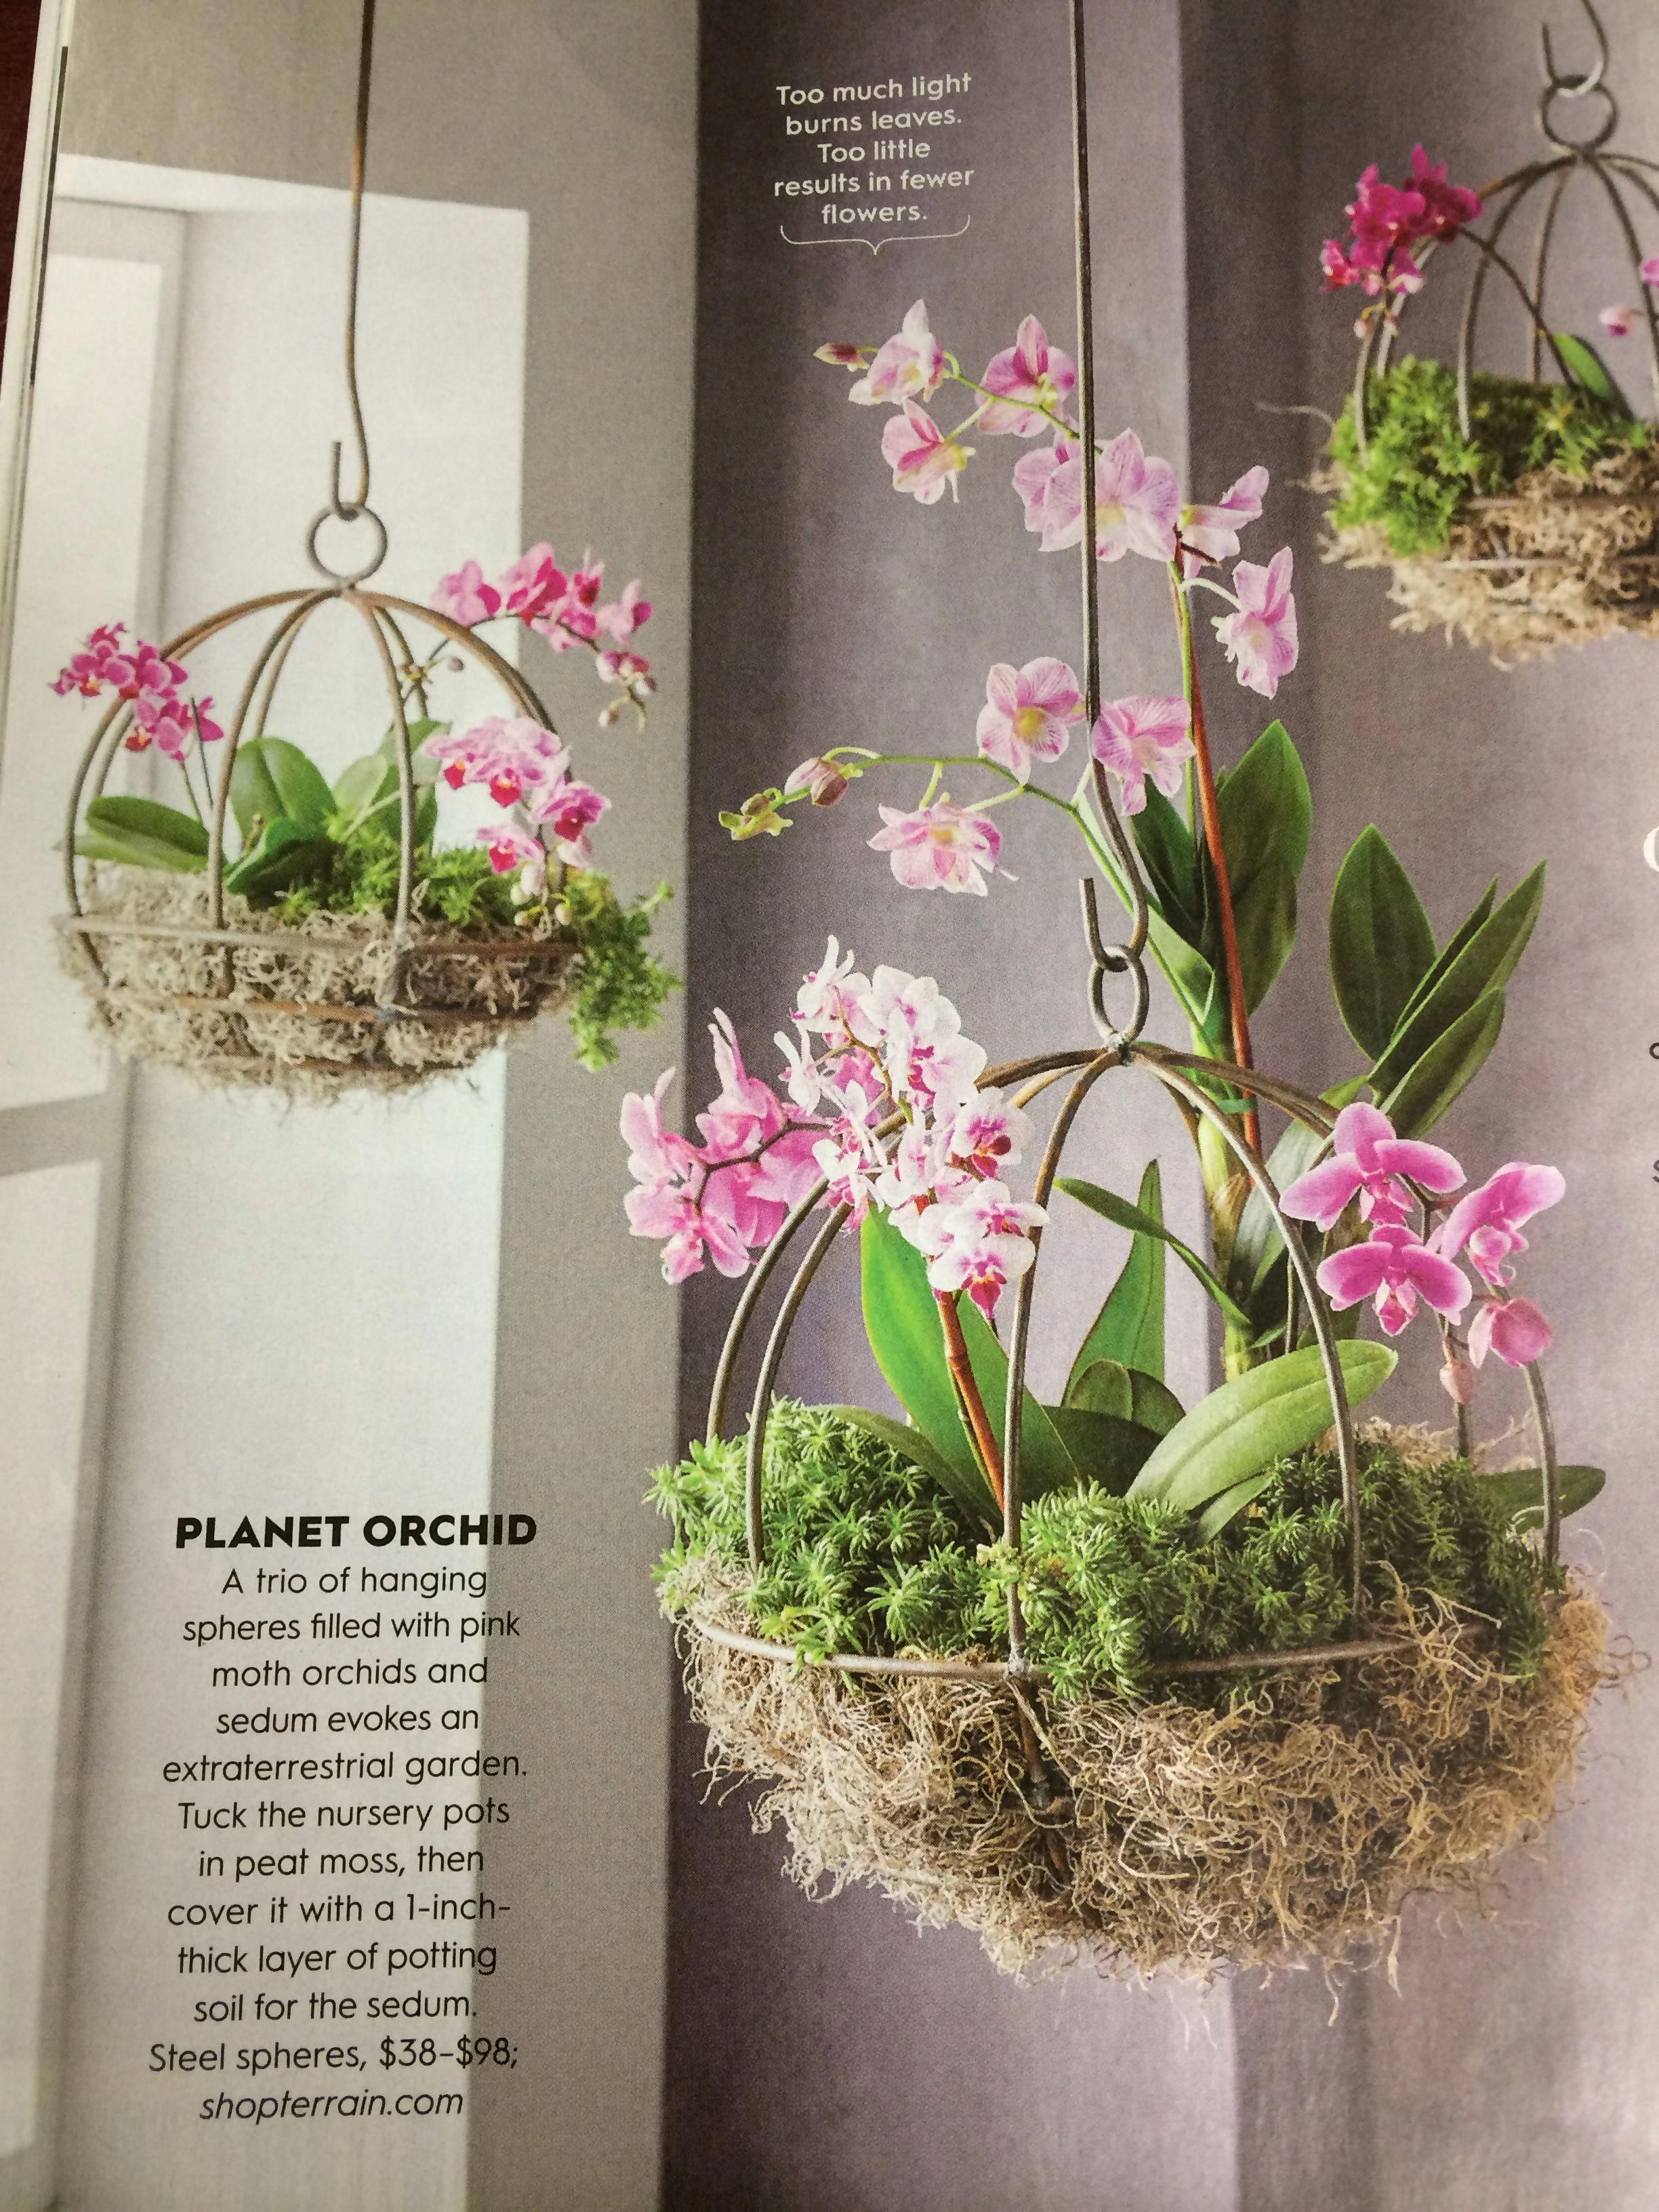 Orchids Blooming Cycle Orchids Plantar Orquideas Cultivo De